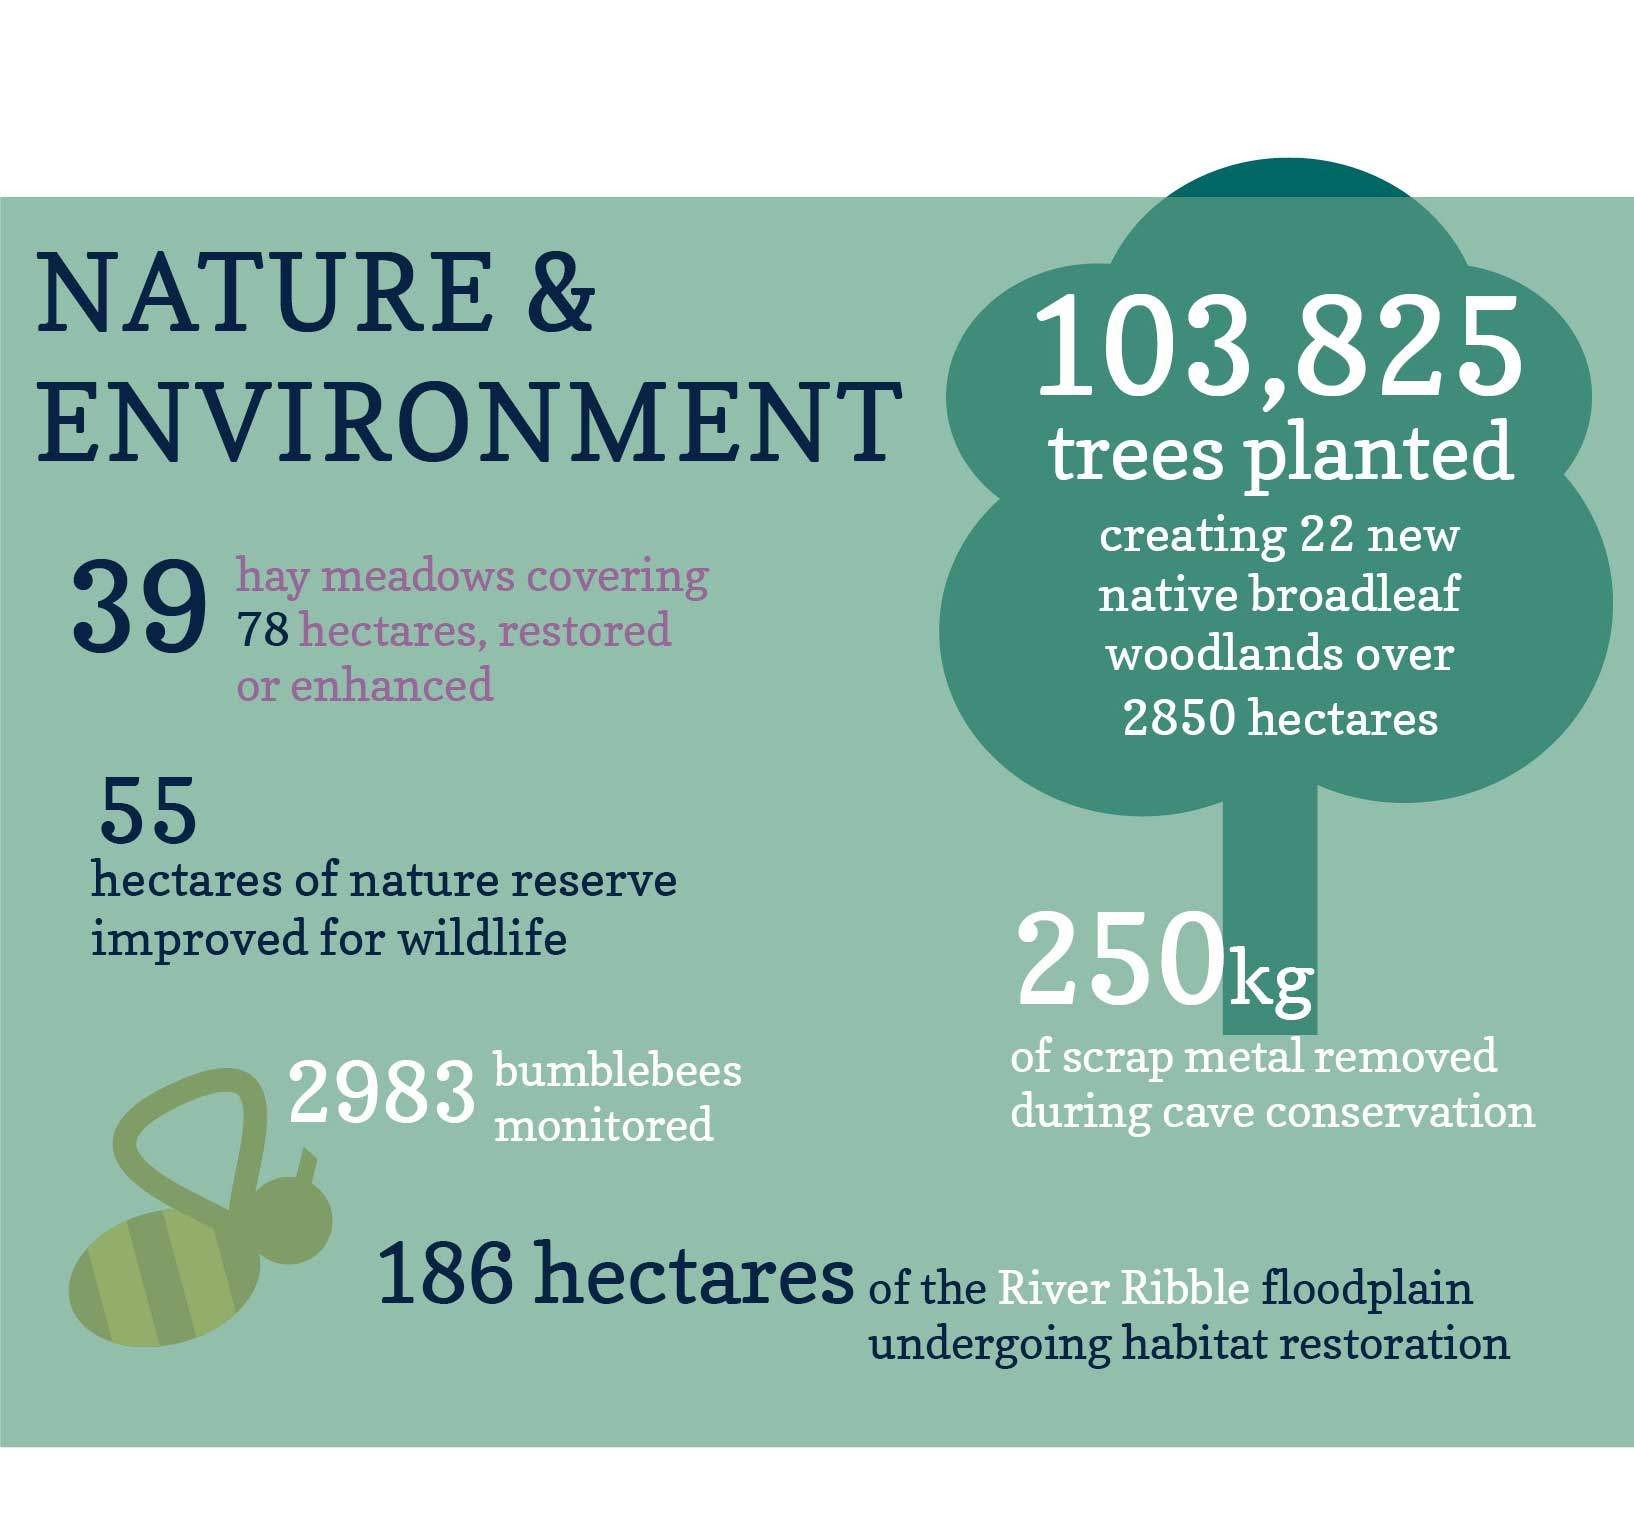 Our impact on nature and the environment in the Yorkshire Dales